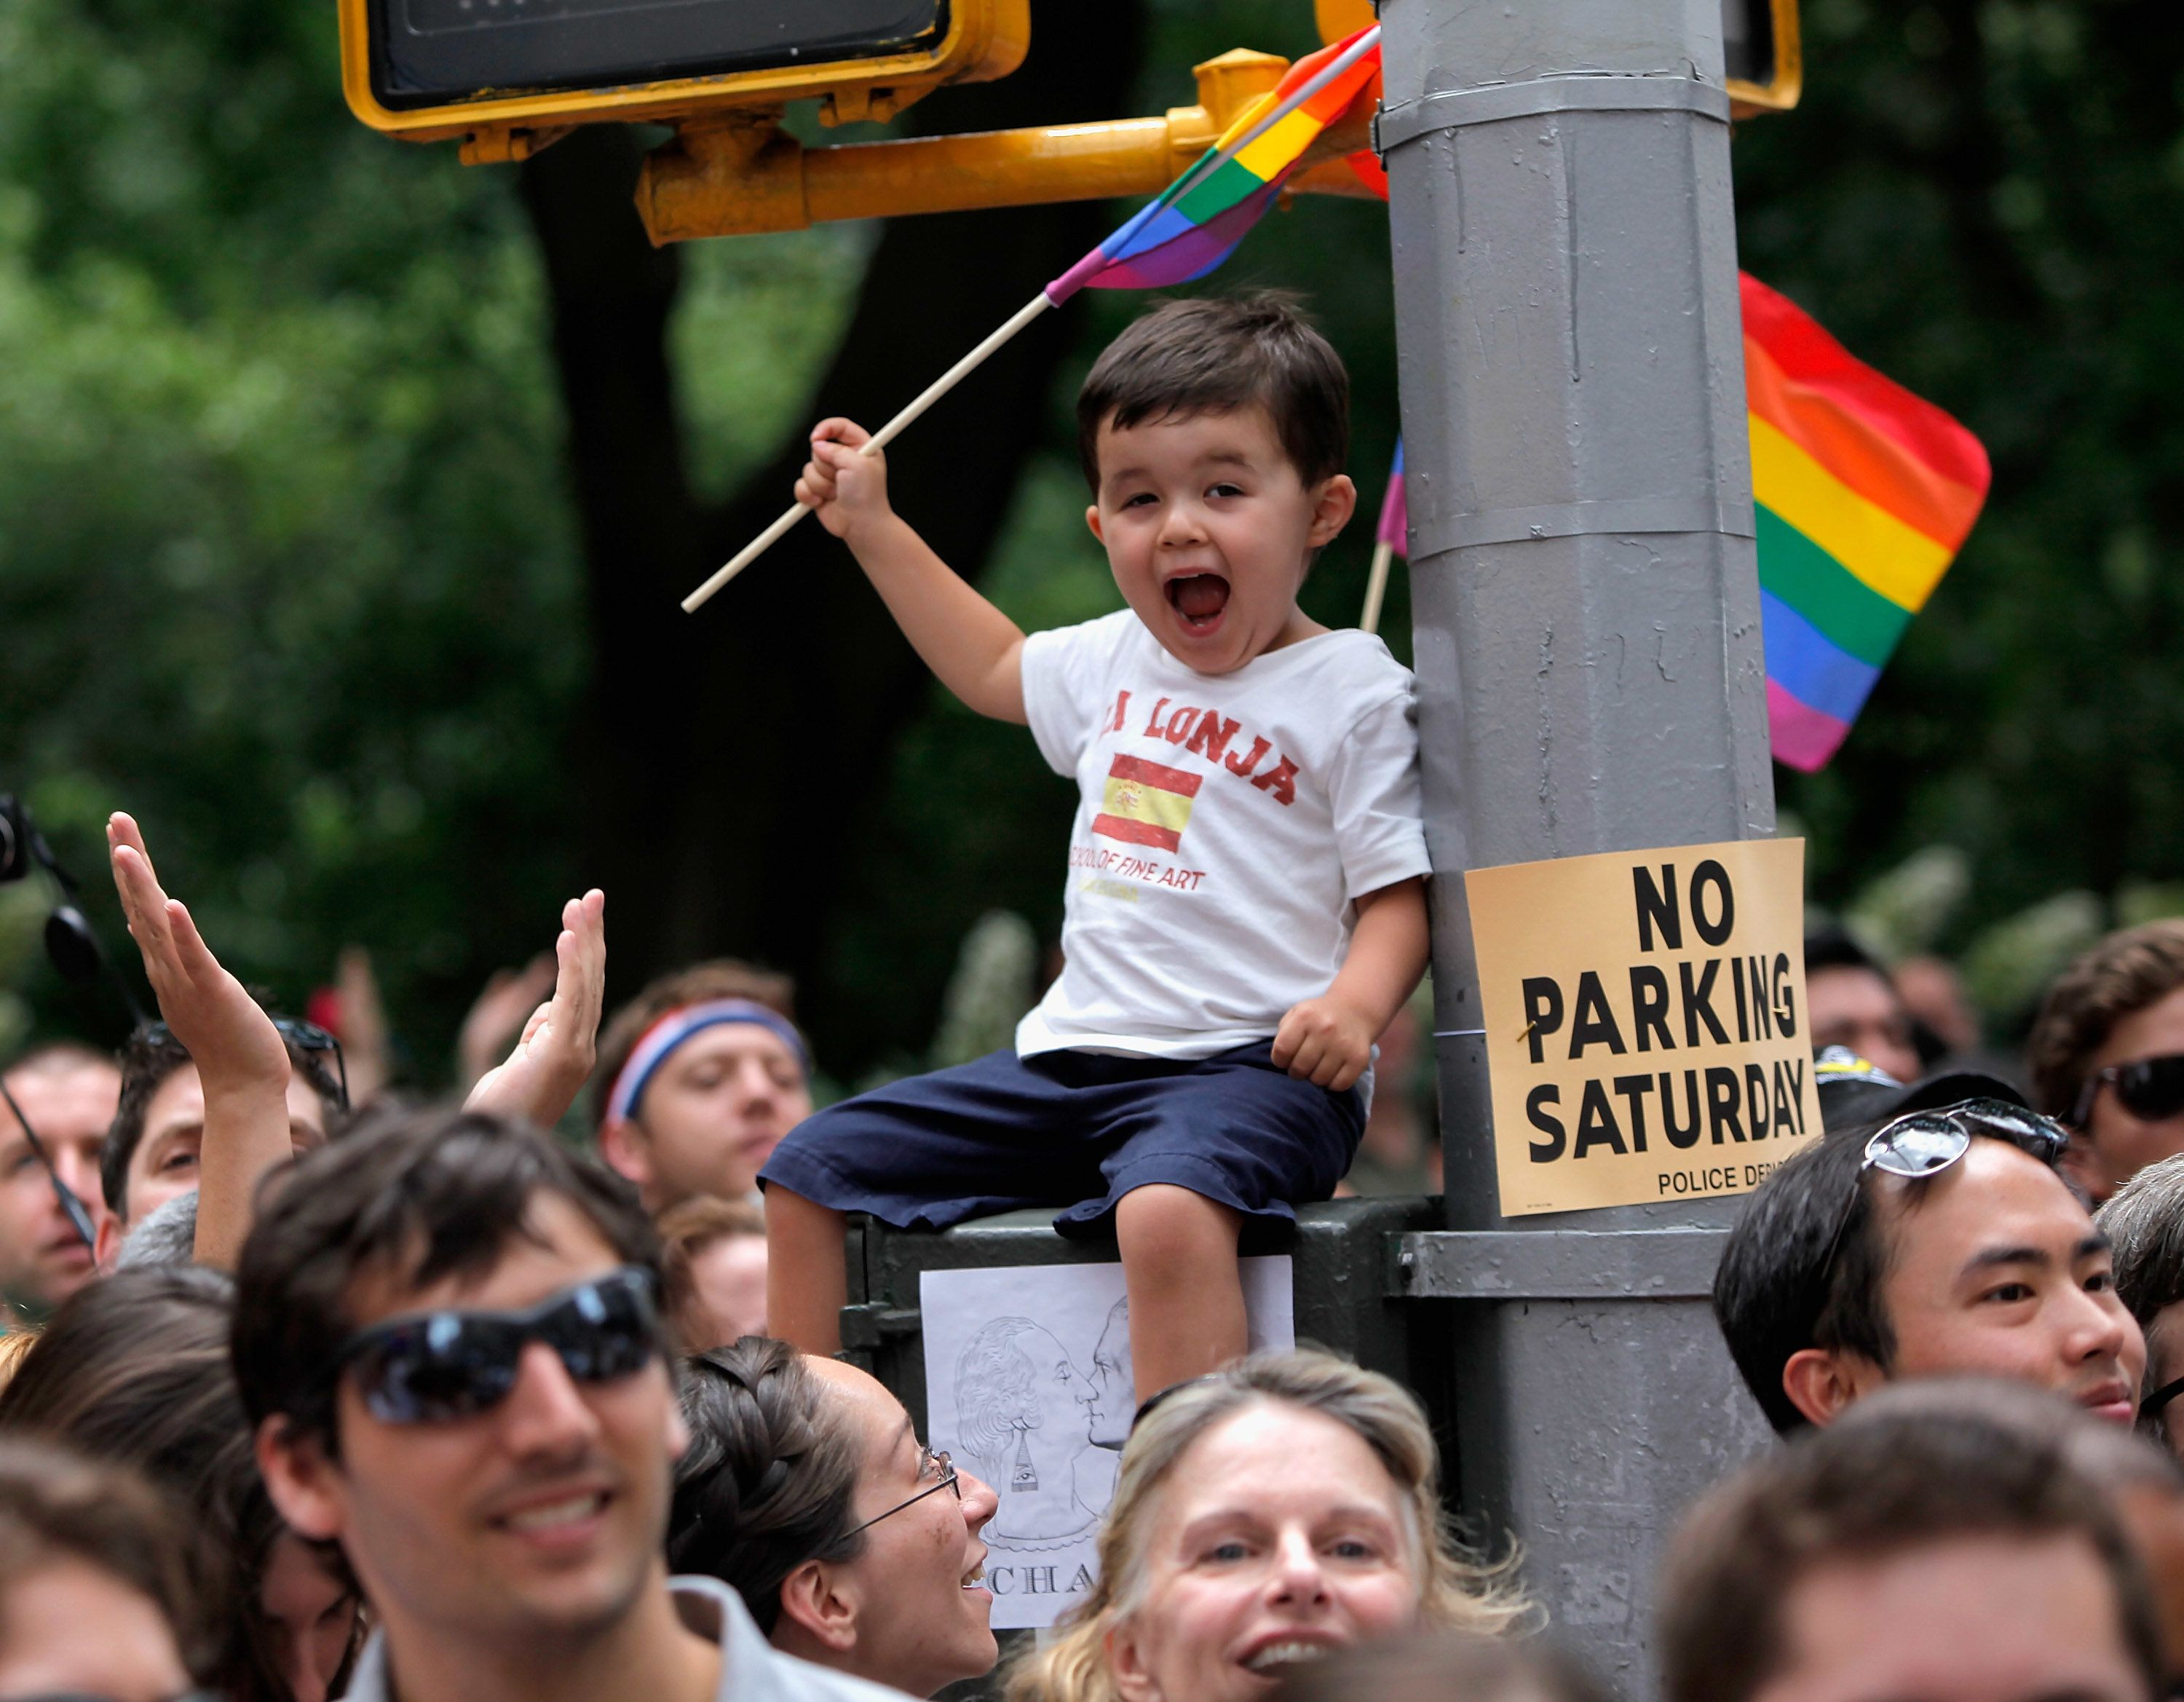 A young boy waves a flag during the 2011 NYC LGBT Pride march on the streets of Manhattan on June 26, 2011 in New York City.